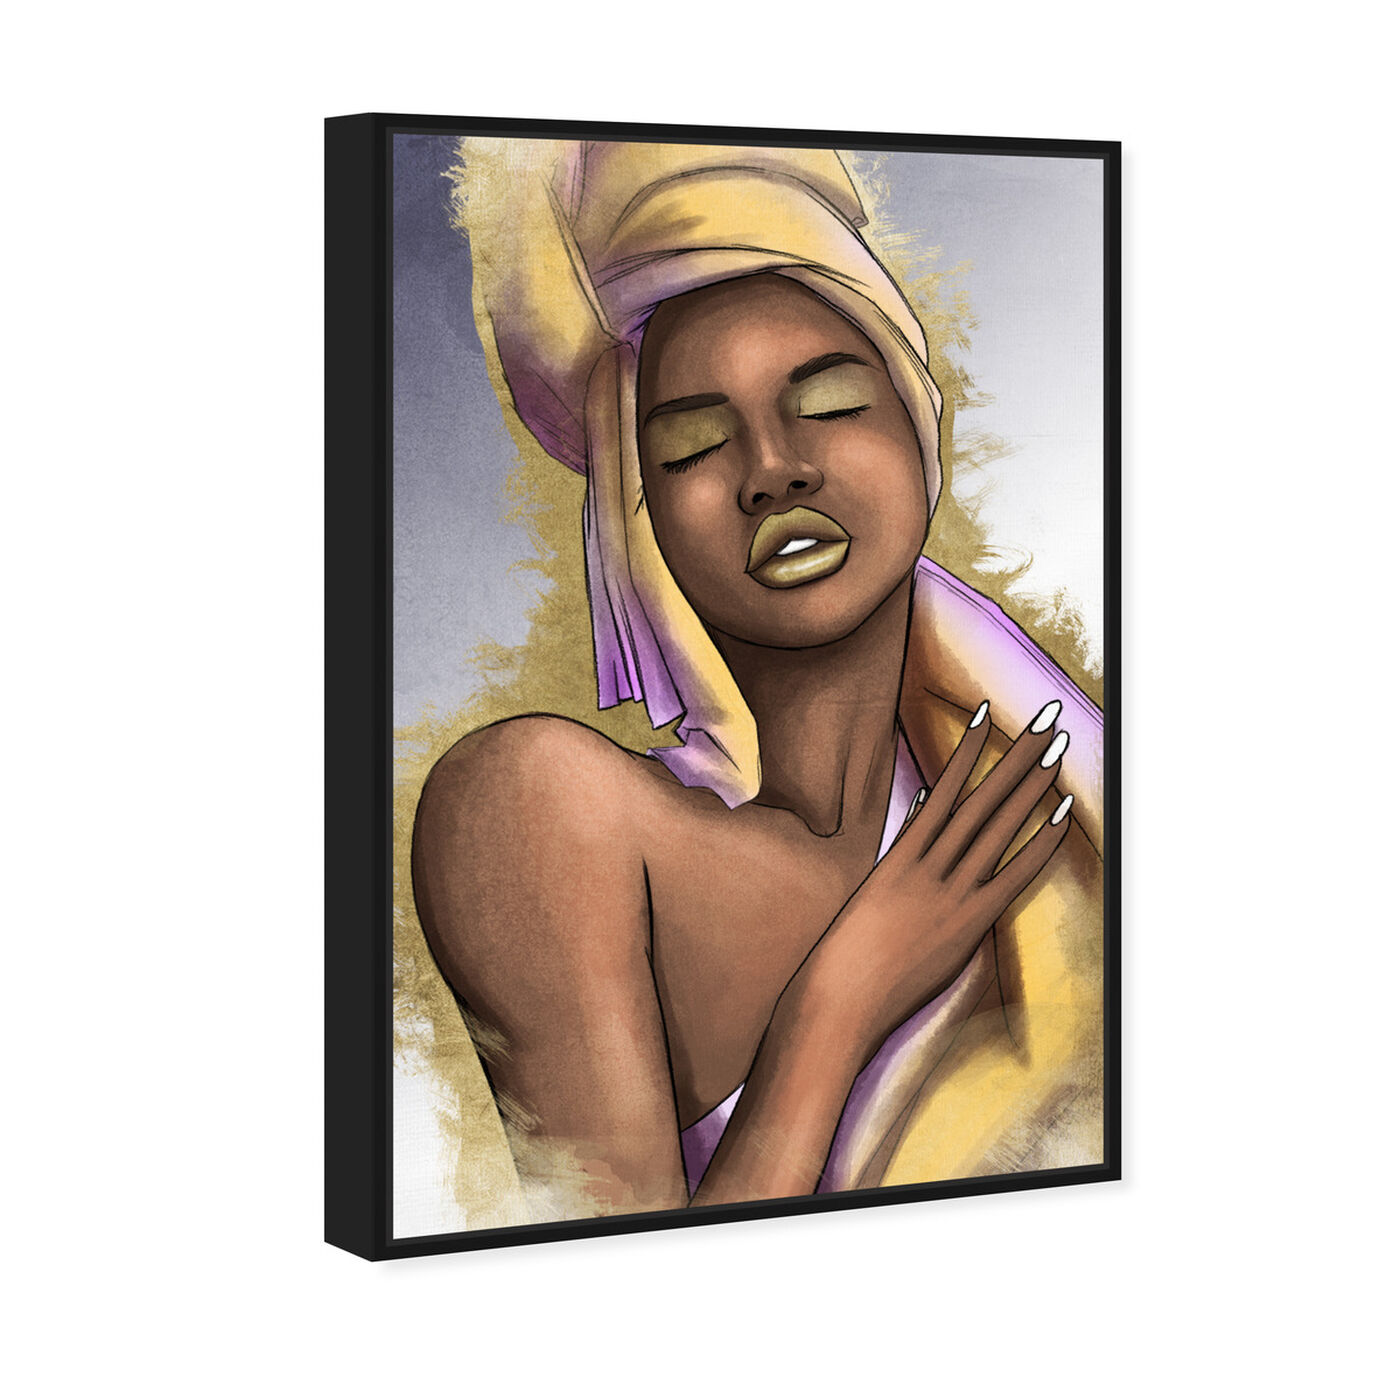 Angled view of Golden Shades featuring fashion and glam and portraits art.